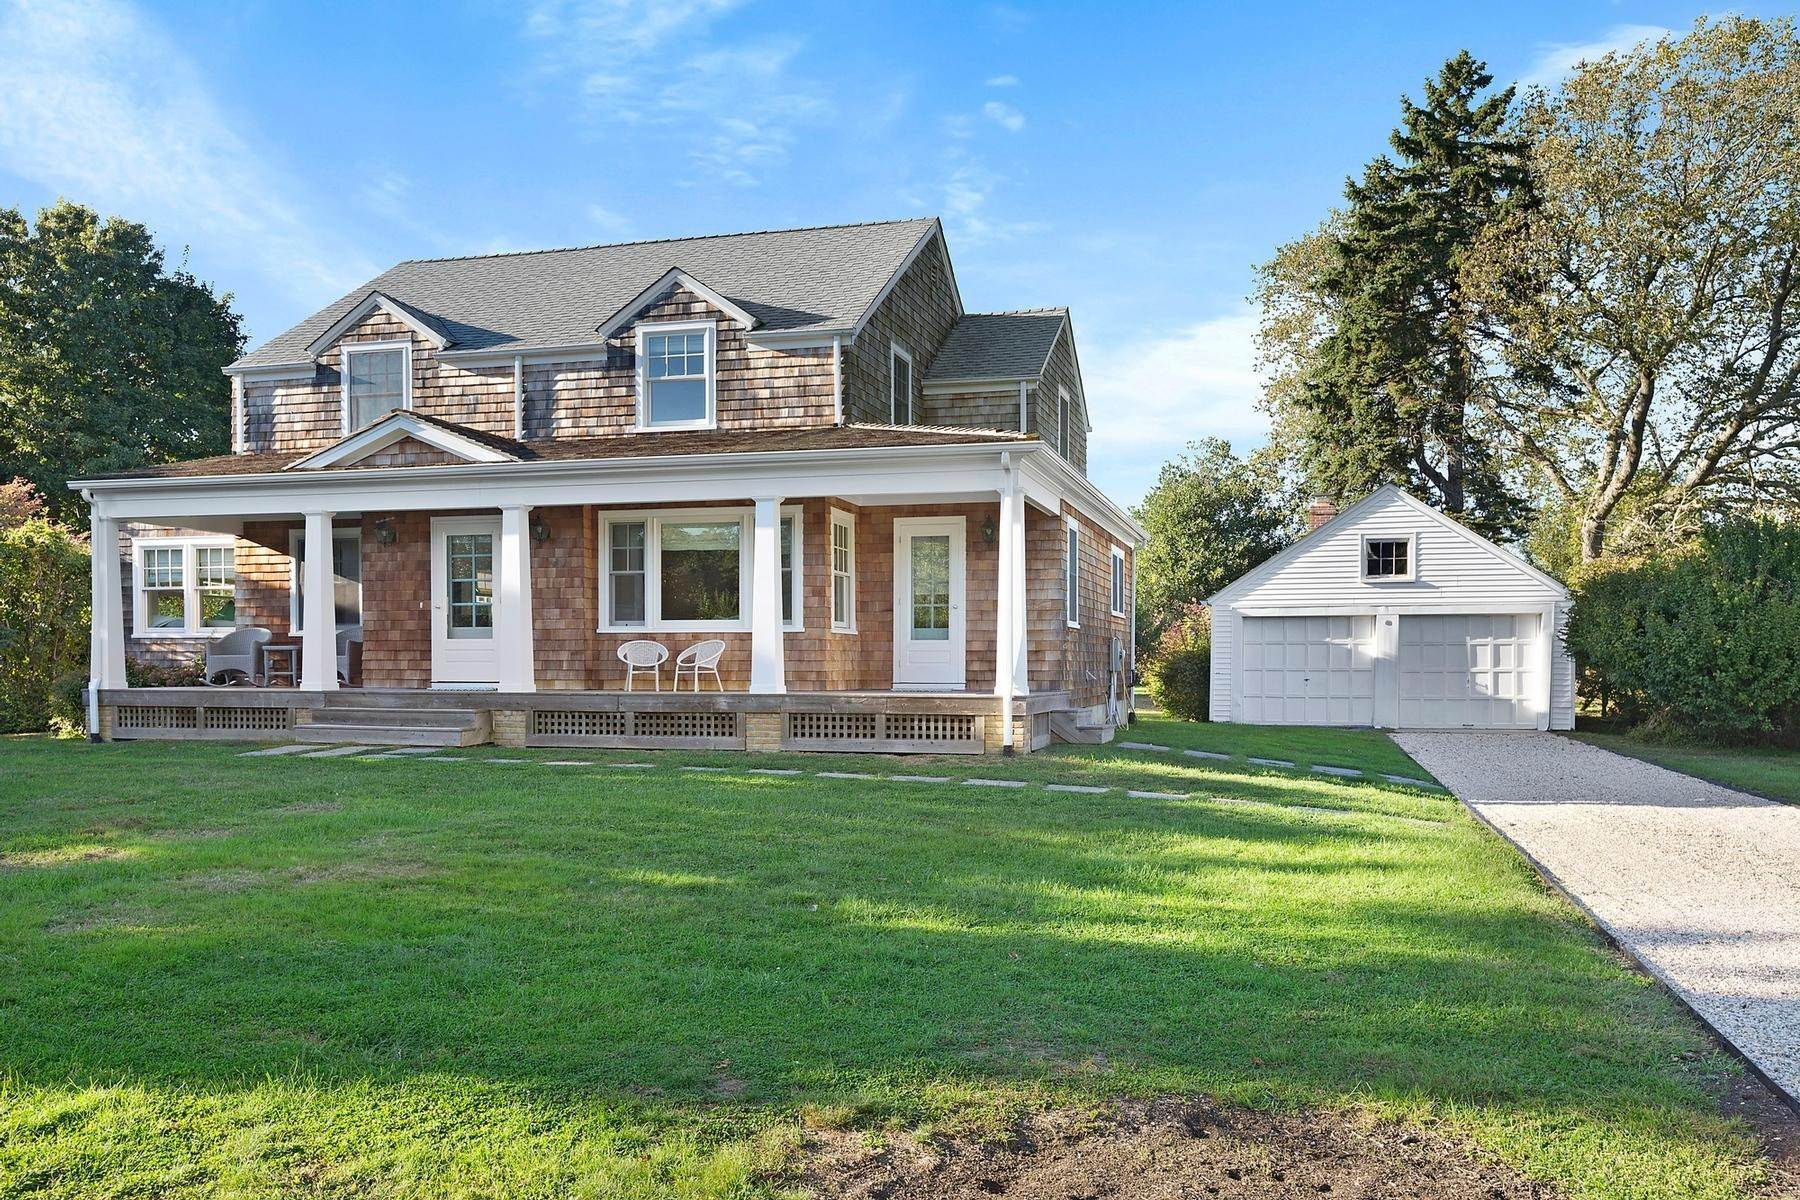 Single Family Home at Charming Montclair Colony Farmhouse Shelter Island Heights, NY 11964